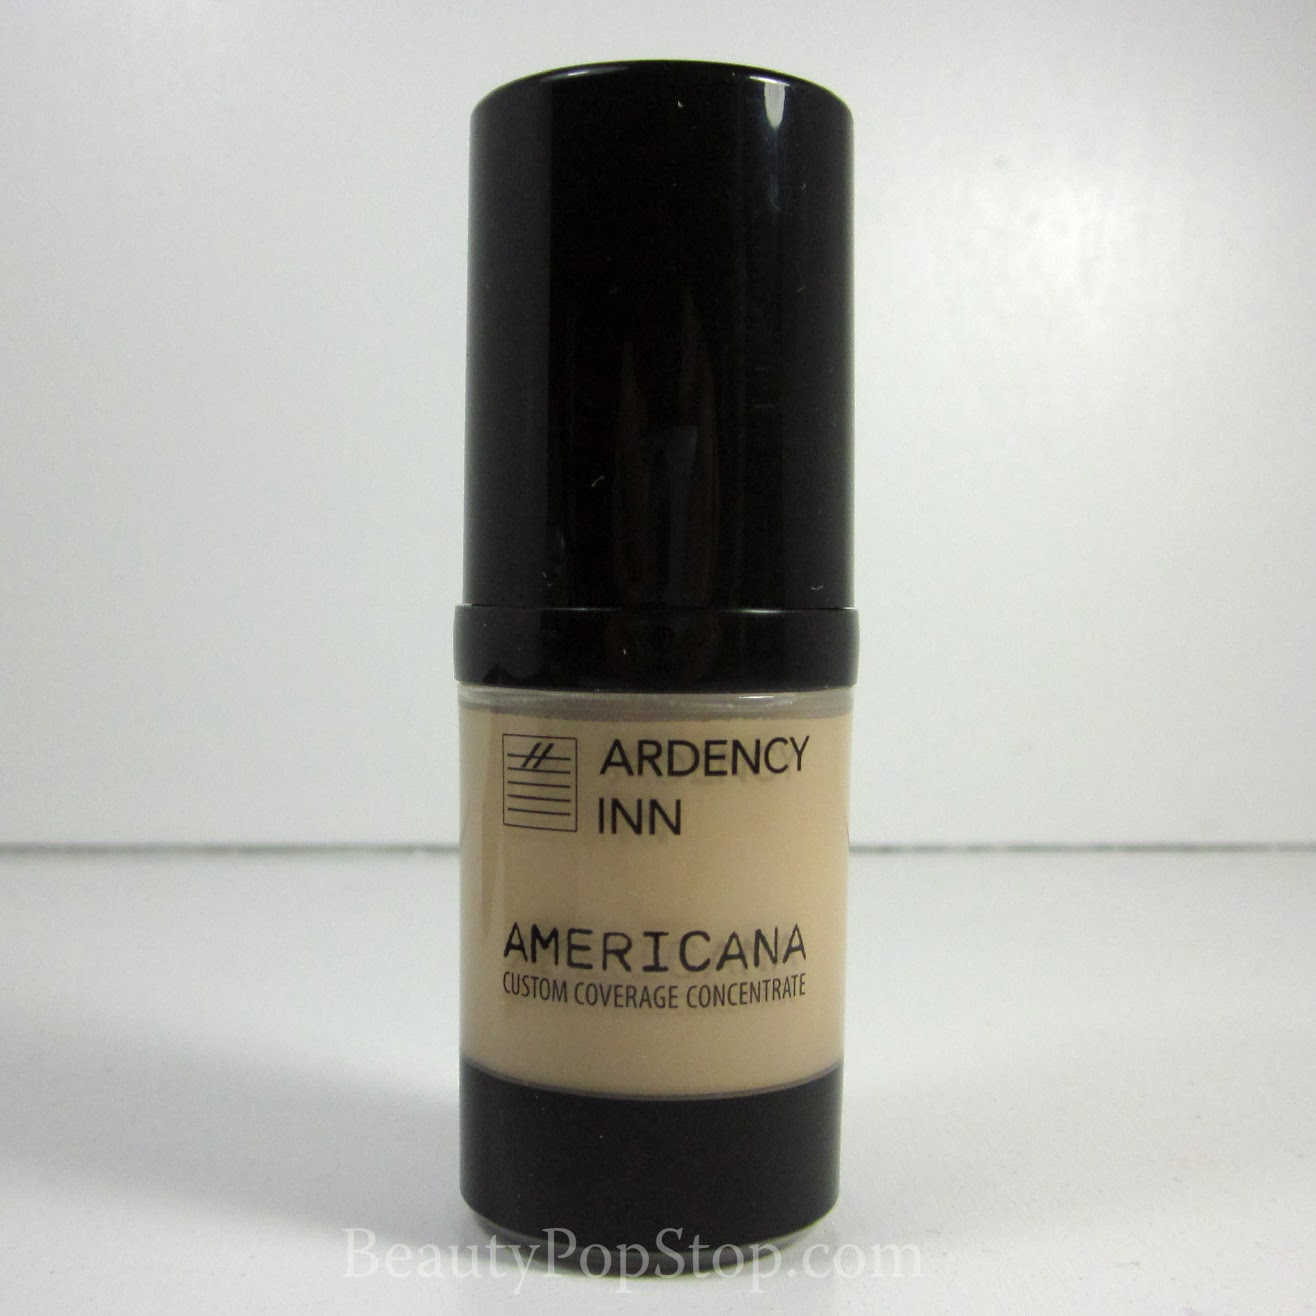 Ardency Inn Americana custom coverage concentrate in light golden beige swatches and review